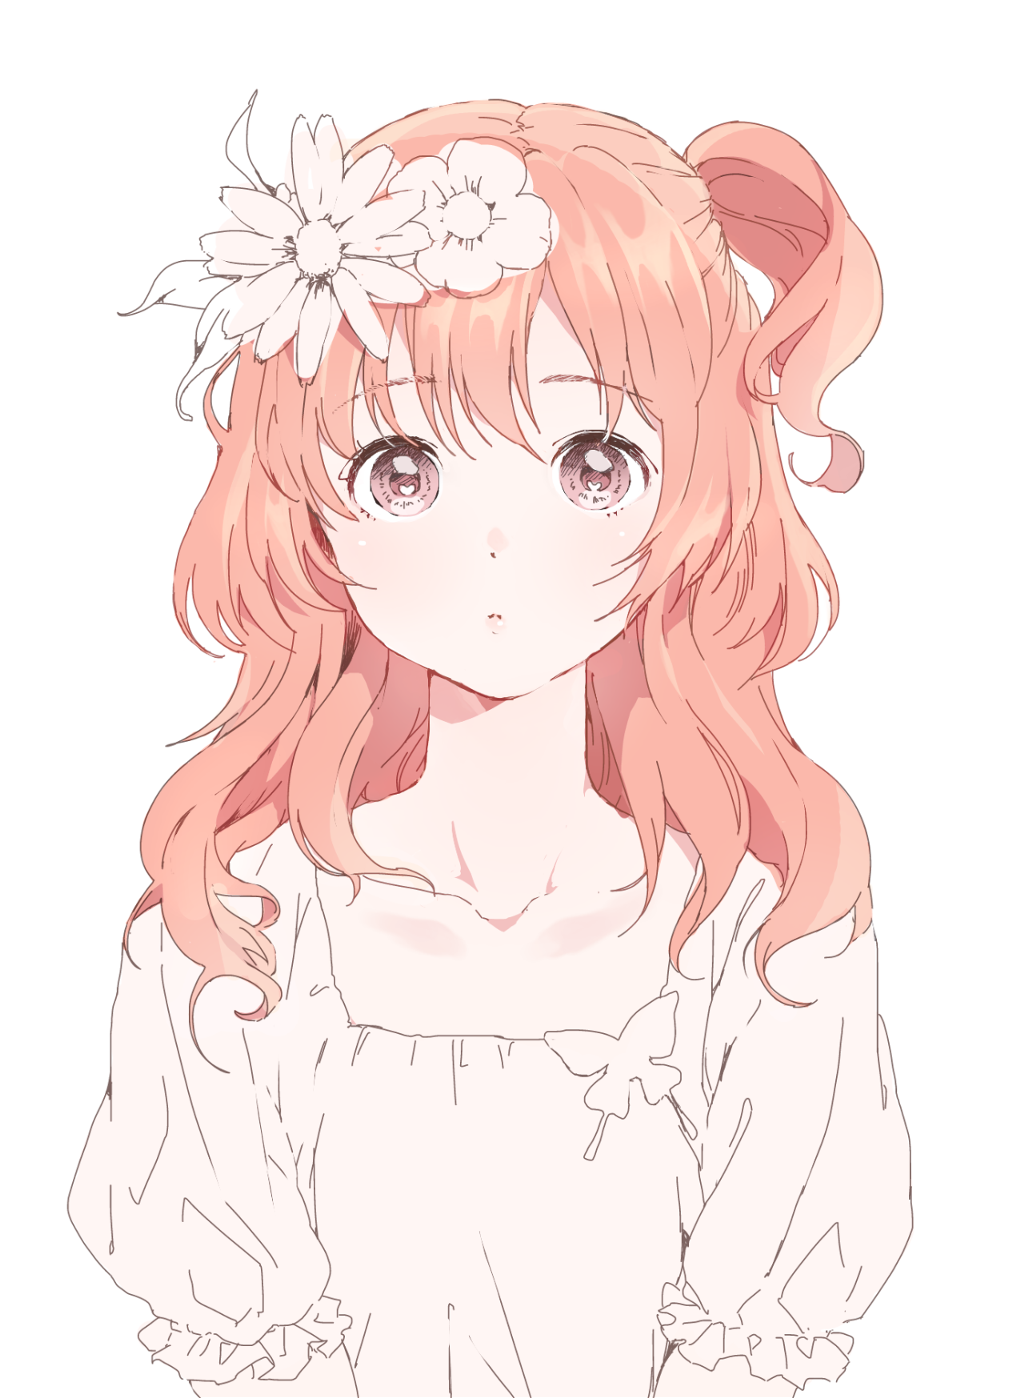 anime girl pretty cute art notmine tumblr post creditto